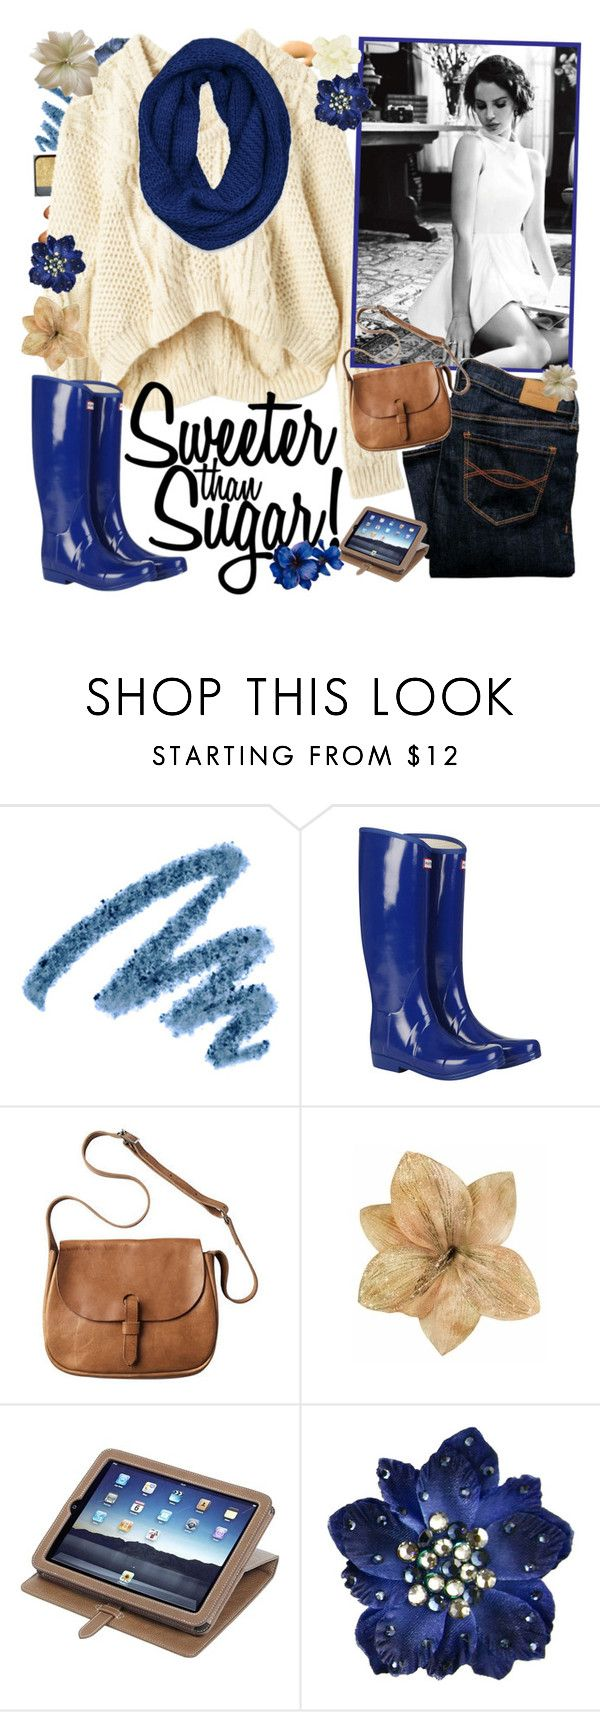 """shitty set , but oh well ."" by chika-maee-loves-youu ❤ liked on Polyvore featuring Yves Saint Laurent, NARS Cosmetics, Marc by Marc Jacobs, Hunter, Toast, Clips, Mulberry, Tarina Tarantino, Freeze and Hollister Co."